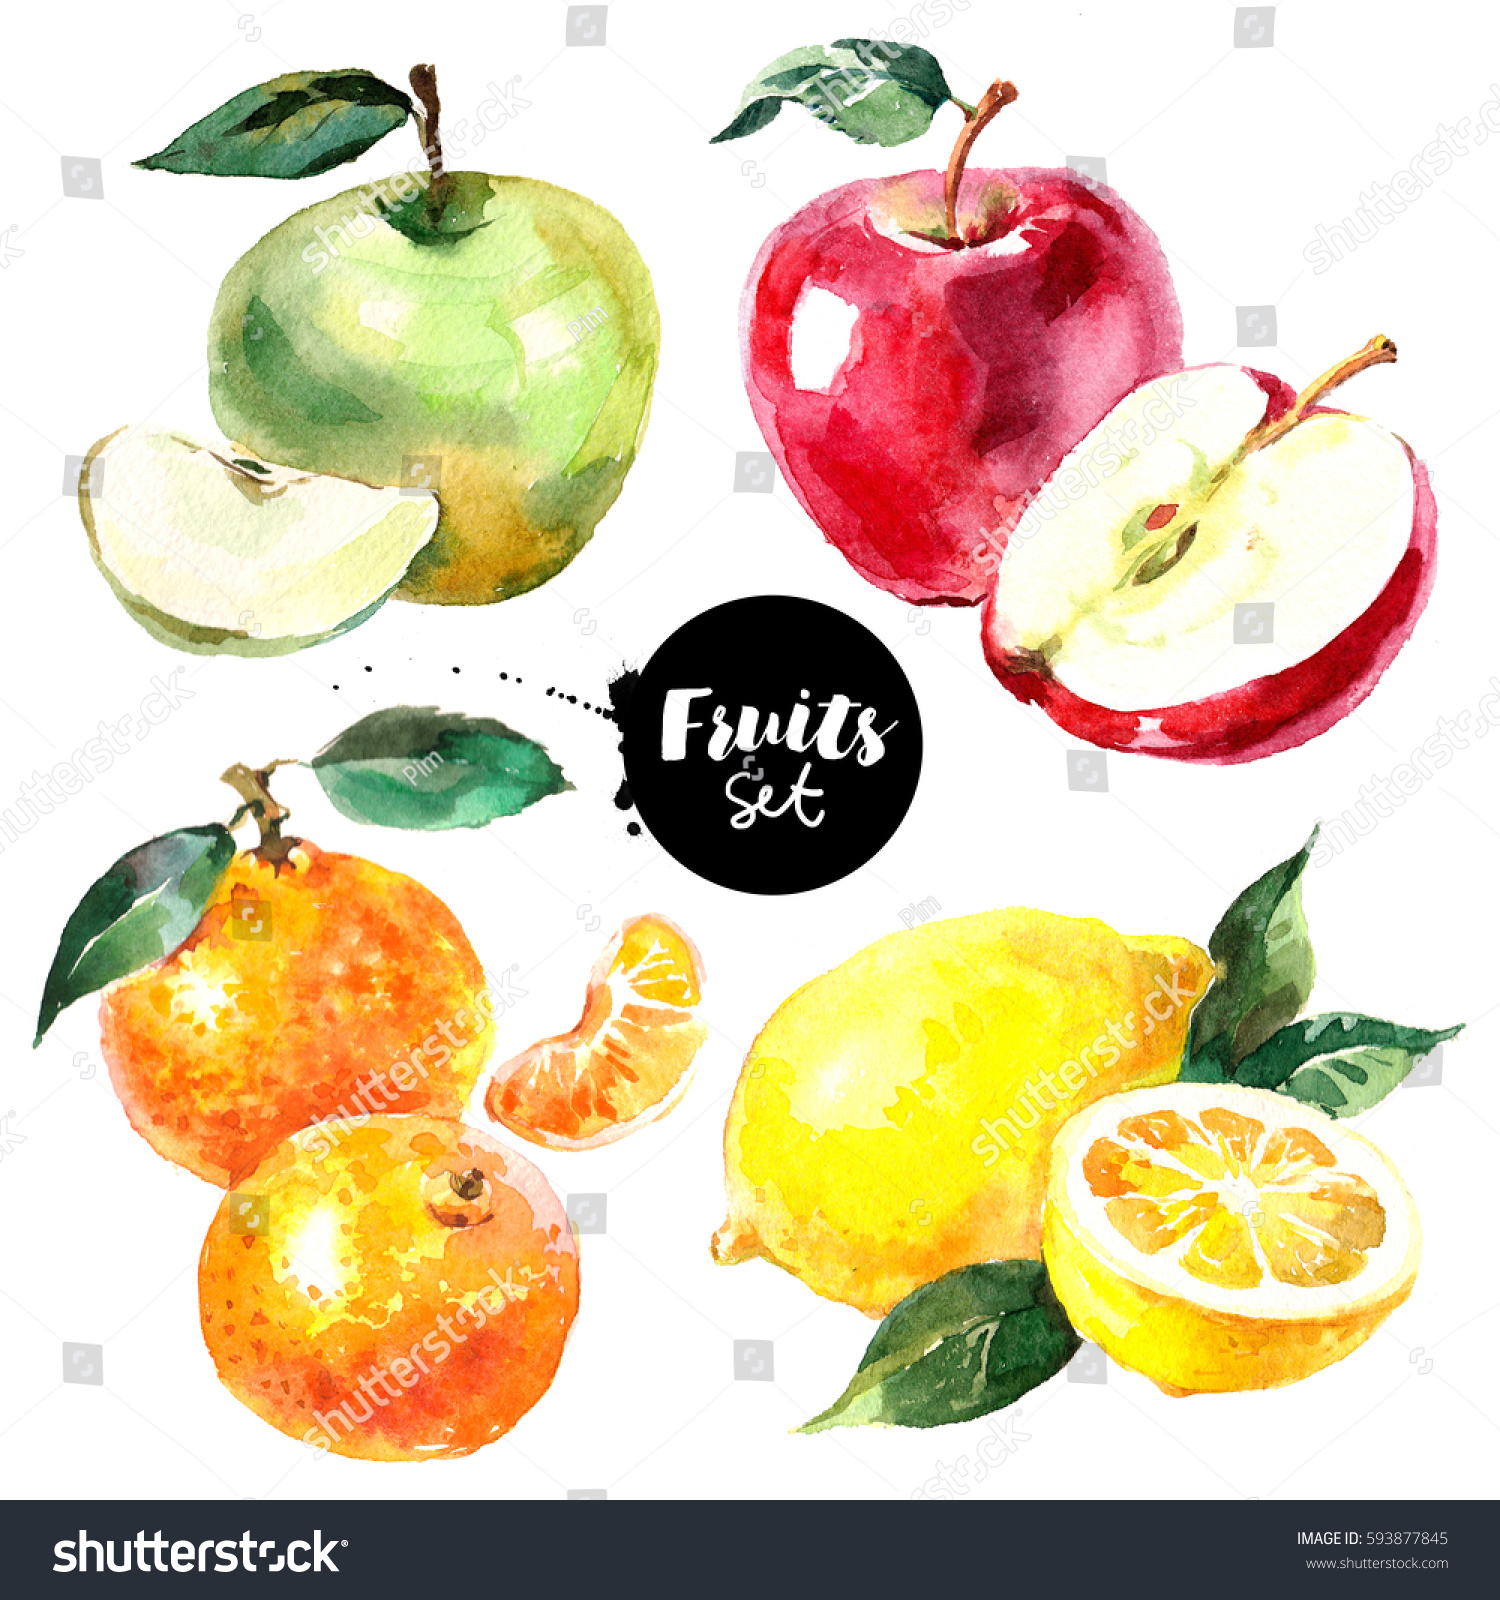 watercolor apples fruits vegetables tangerine lemon natural organic illustration shutterstock isolated painted eco fresh background food